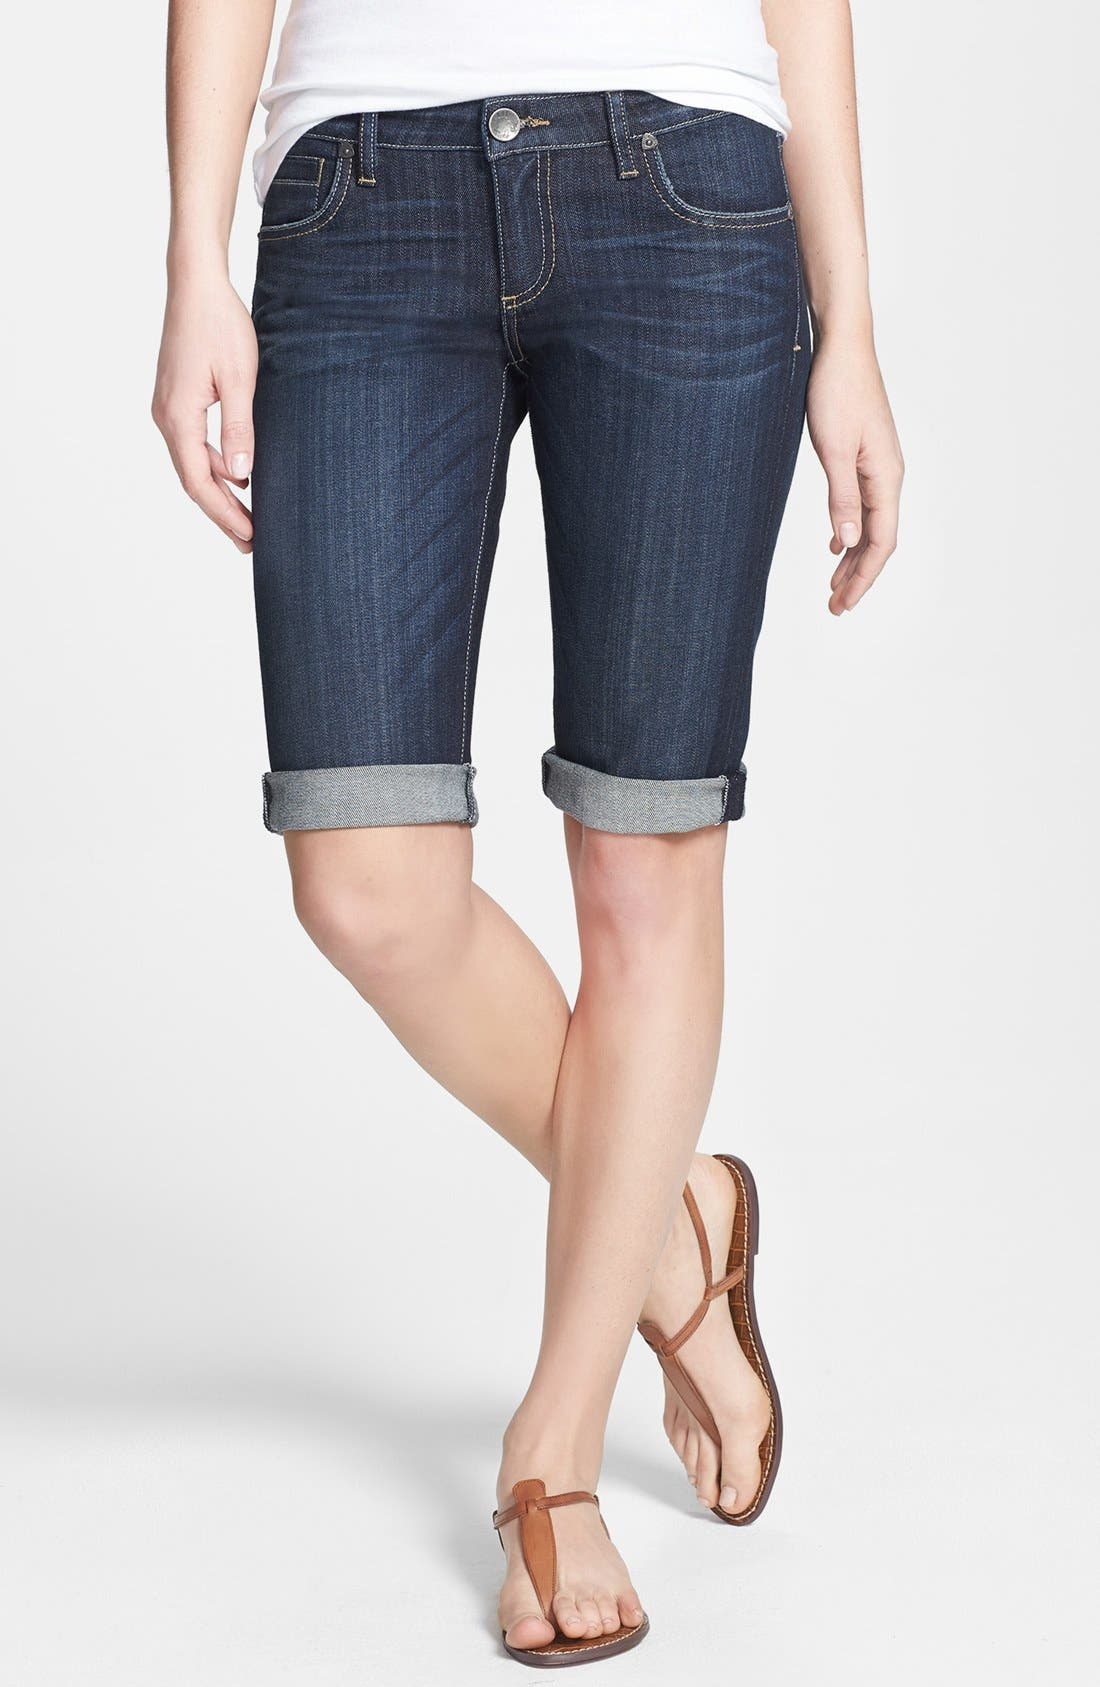 Alternate Image 1 Selected - KUT from The Kloth Roll-Up Denim Bermuda Shorts (Wise) (Regular & Petite)